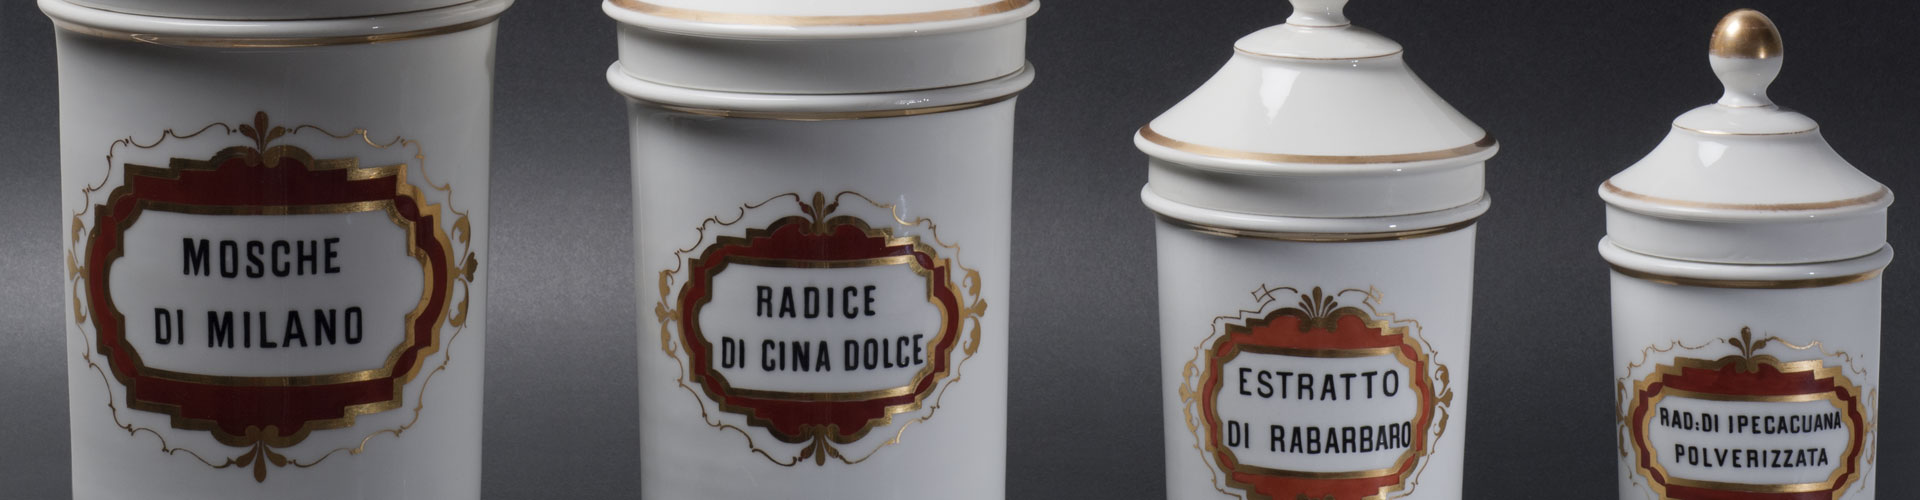 Mazzolini Giuseppucci Pharmacy Museum's Ginori collection of pharmacy porcelain vases and ingredient containers